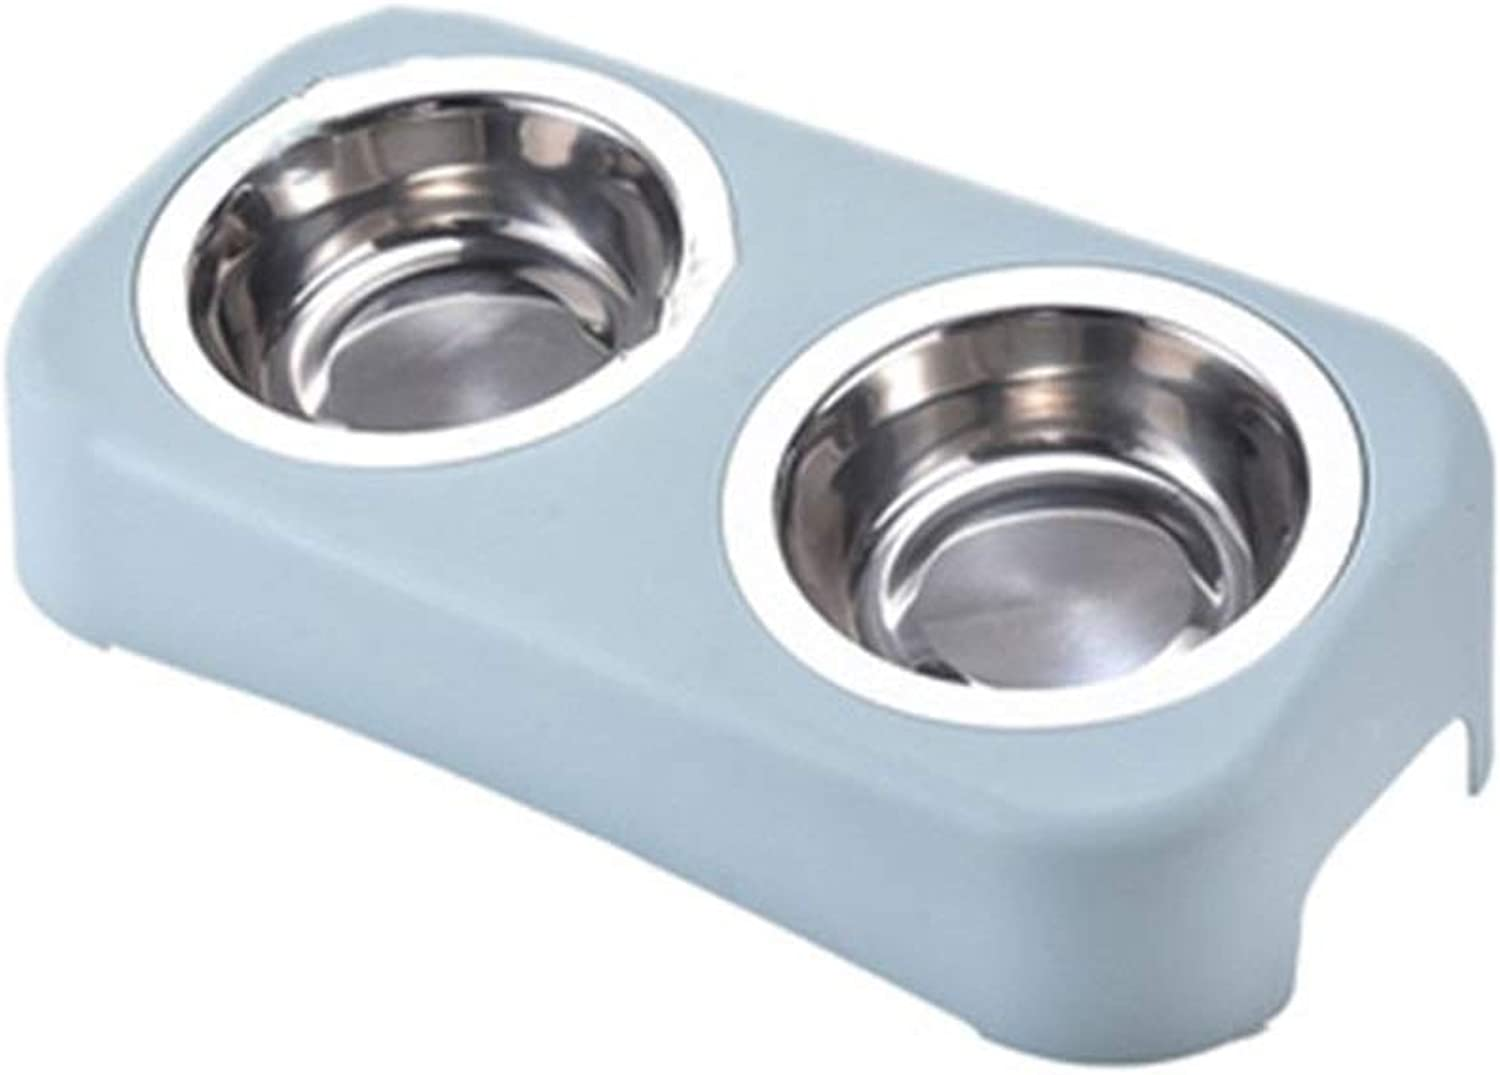 DSADDSD Pet Bowl Bevel Cat Dog Bowl Stainless Steel Nonslip Double Bowl High Foot Pet Supplies (color   2 , Size   M)